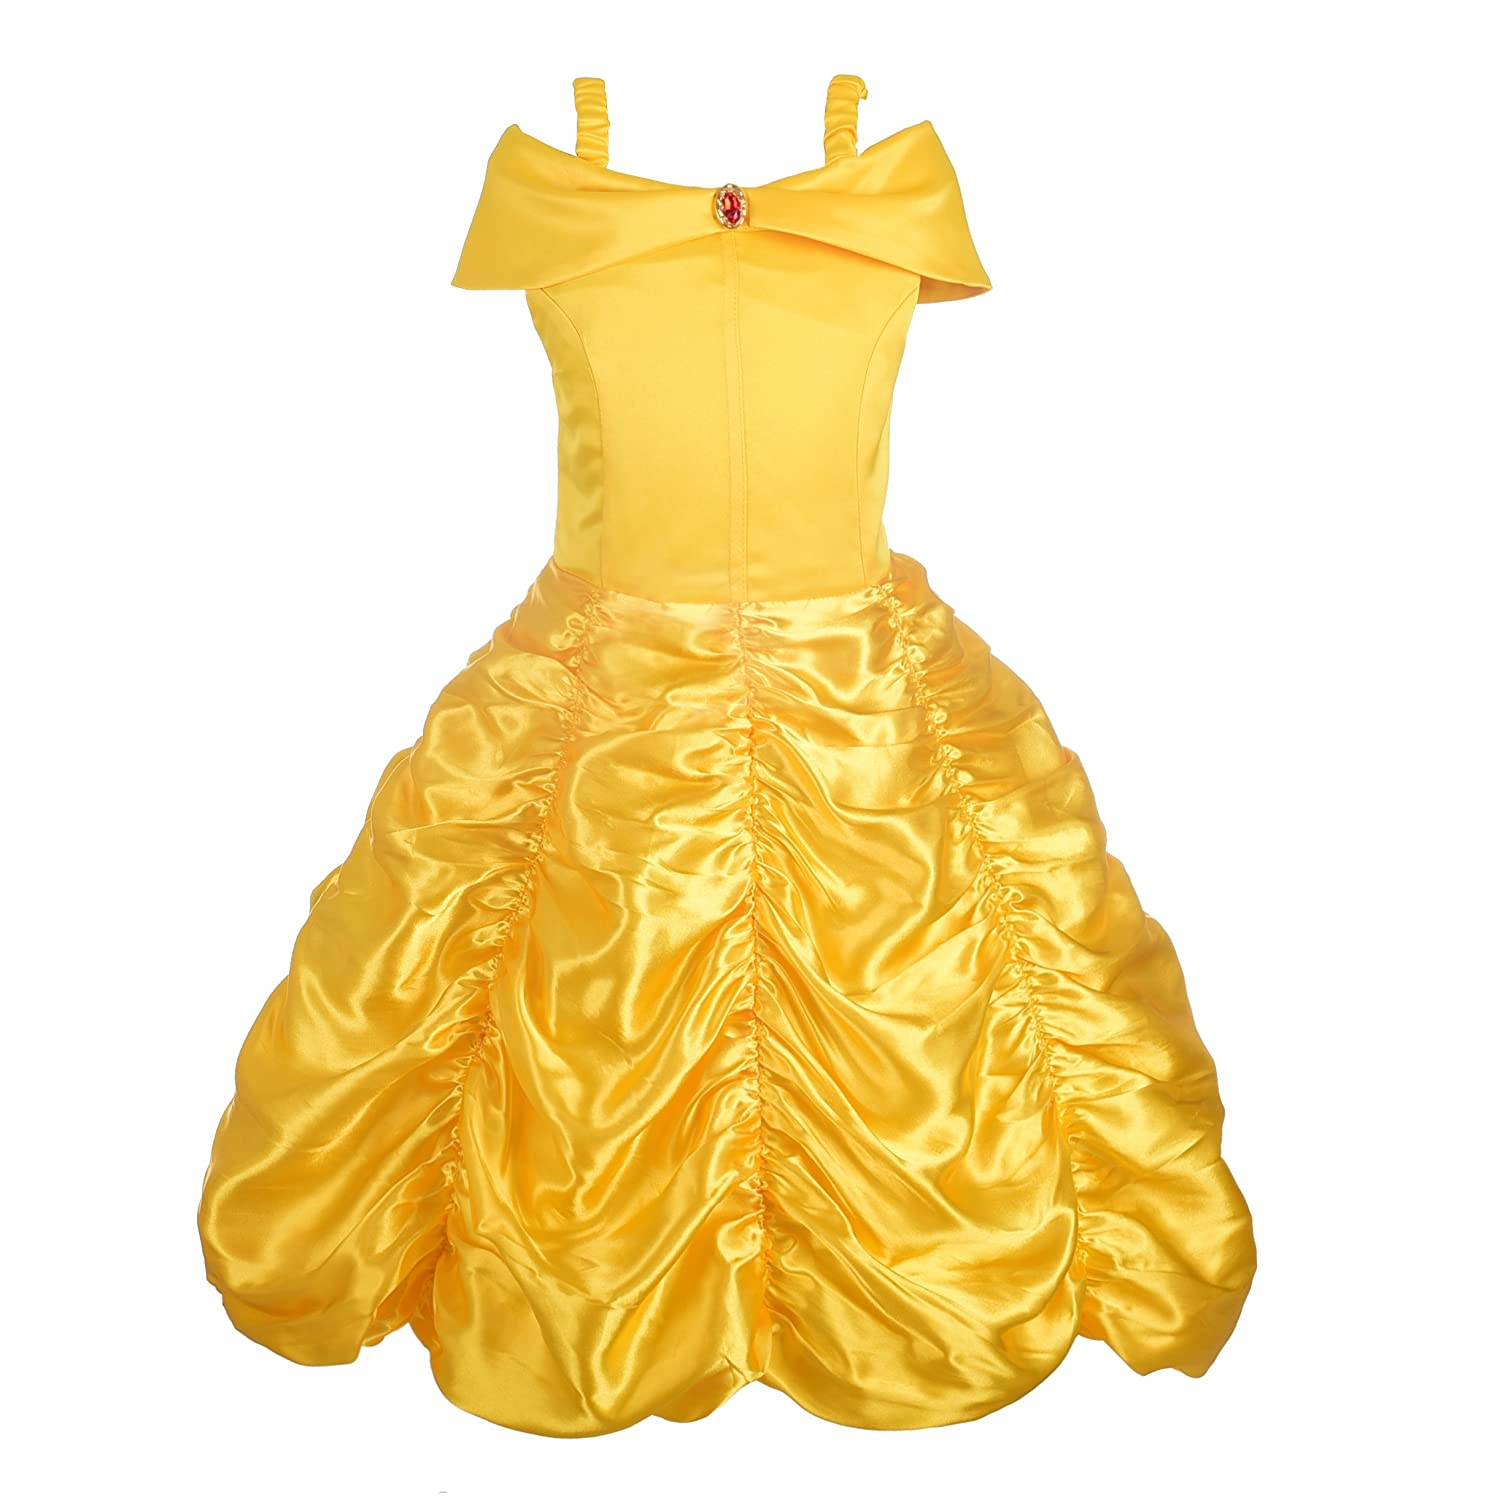 Dressy Daisy Girls' Princess Belle Costumes Princess Dress Up Halloween Costume by Dressy Daisy